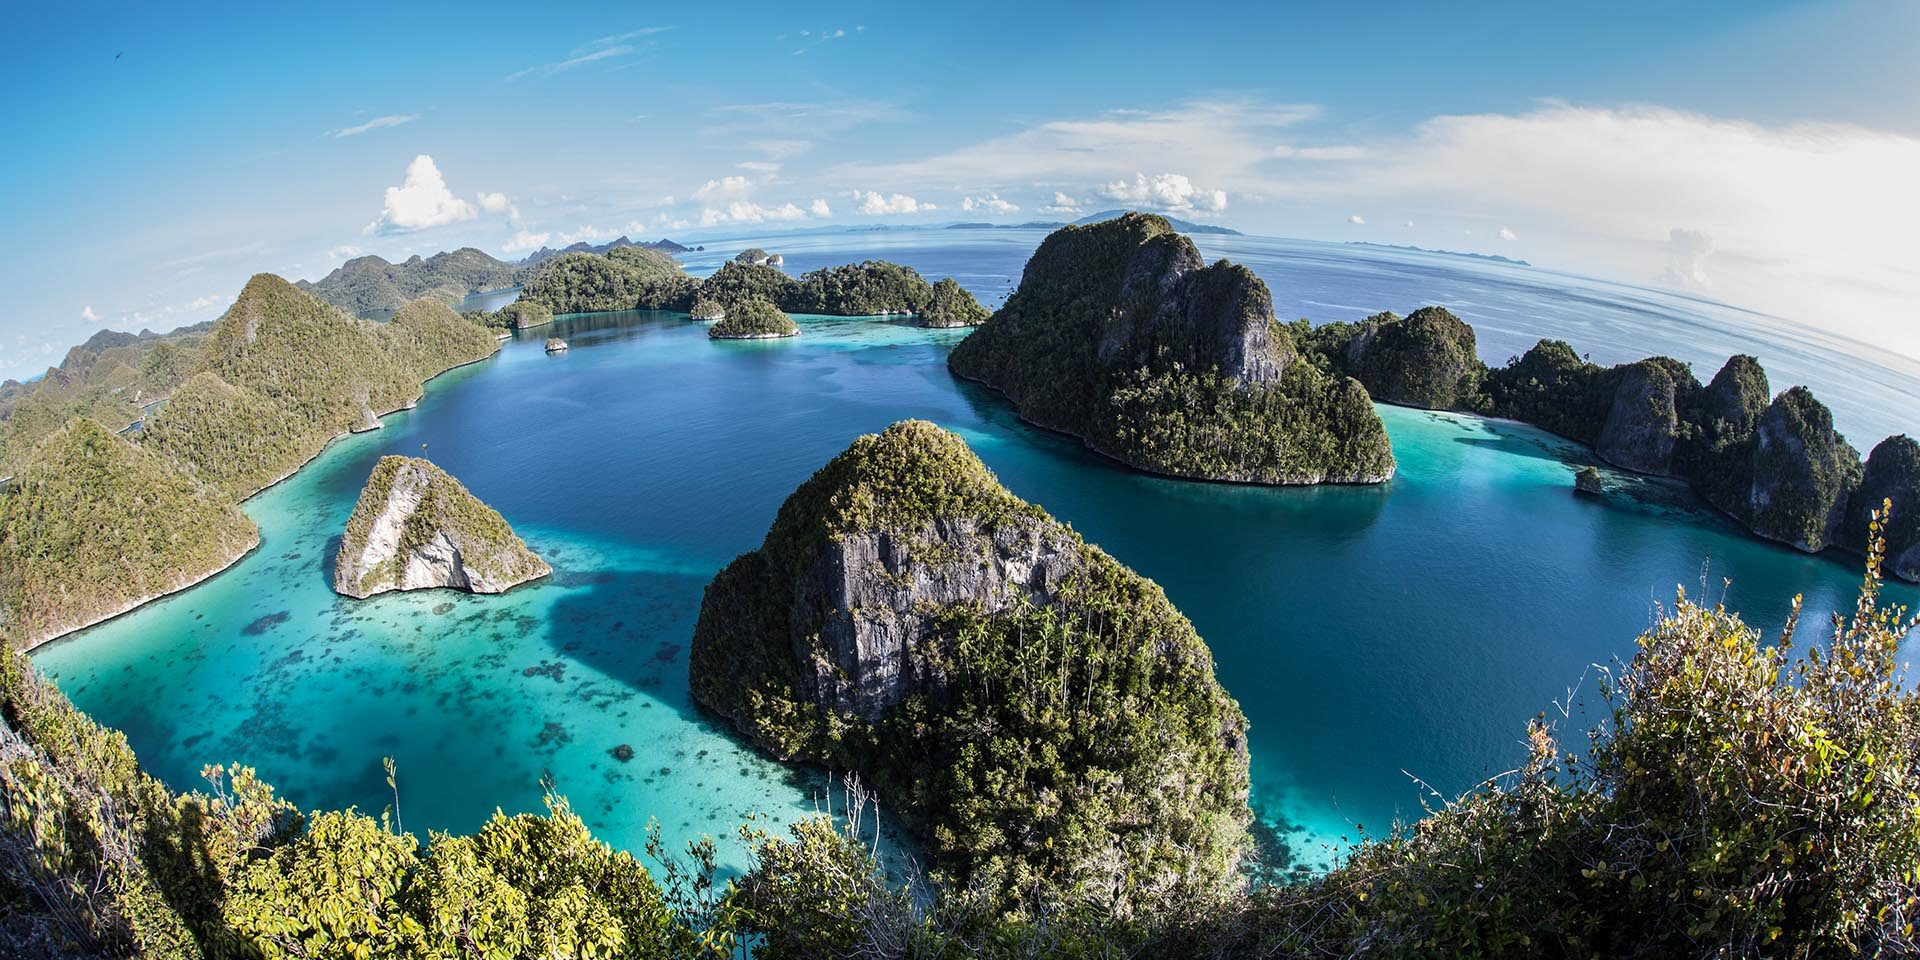 A gorgeous lagoon is surrounded by limestone islands in Wayag, Raja Ampat, Indonesia. This beautiful area is known for its high marine biodiversity and excellent scuba diving and snorkeling.